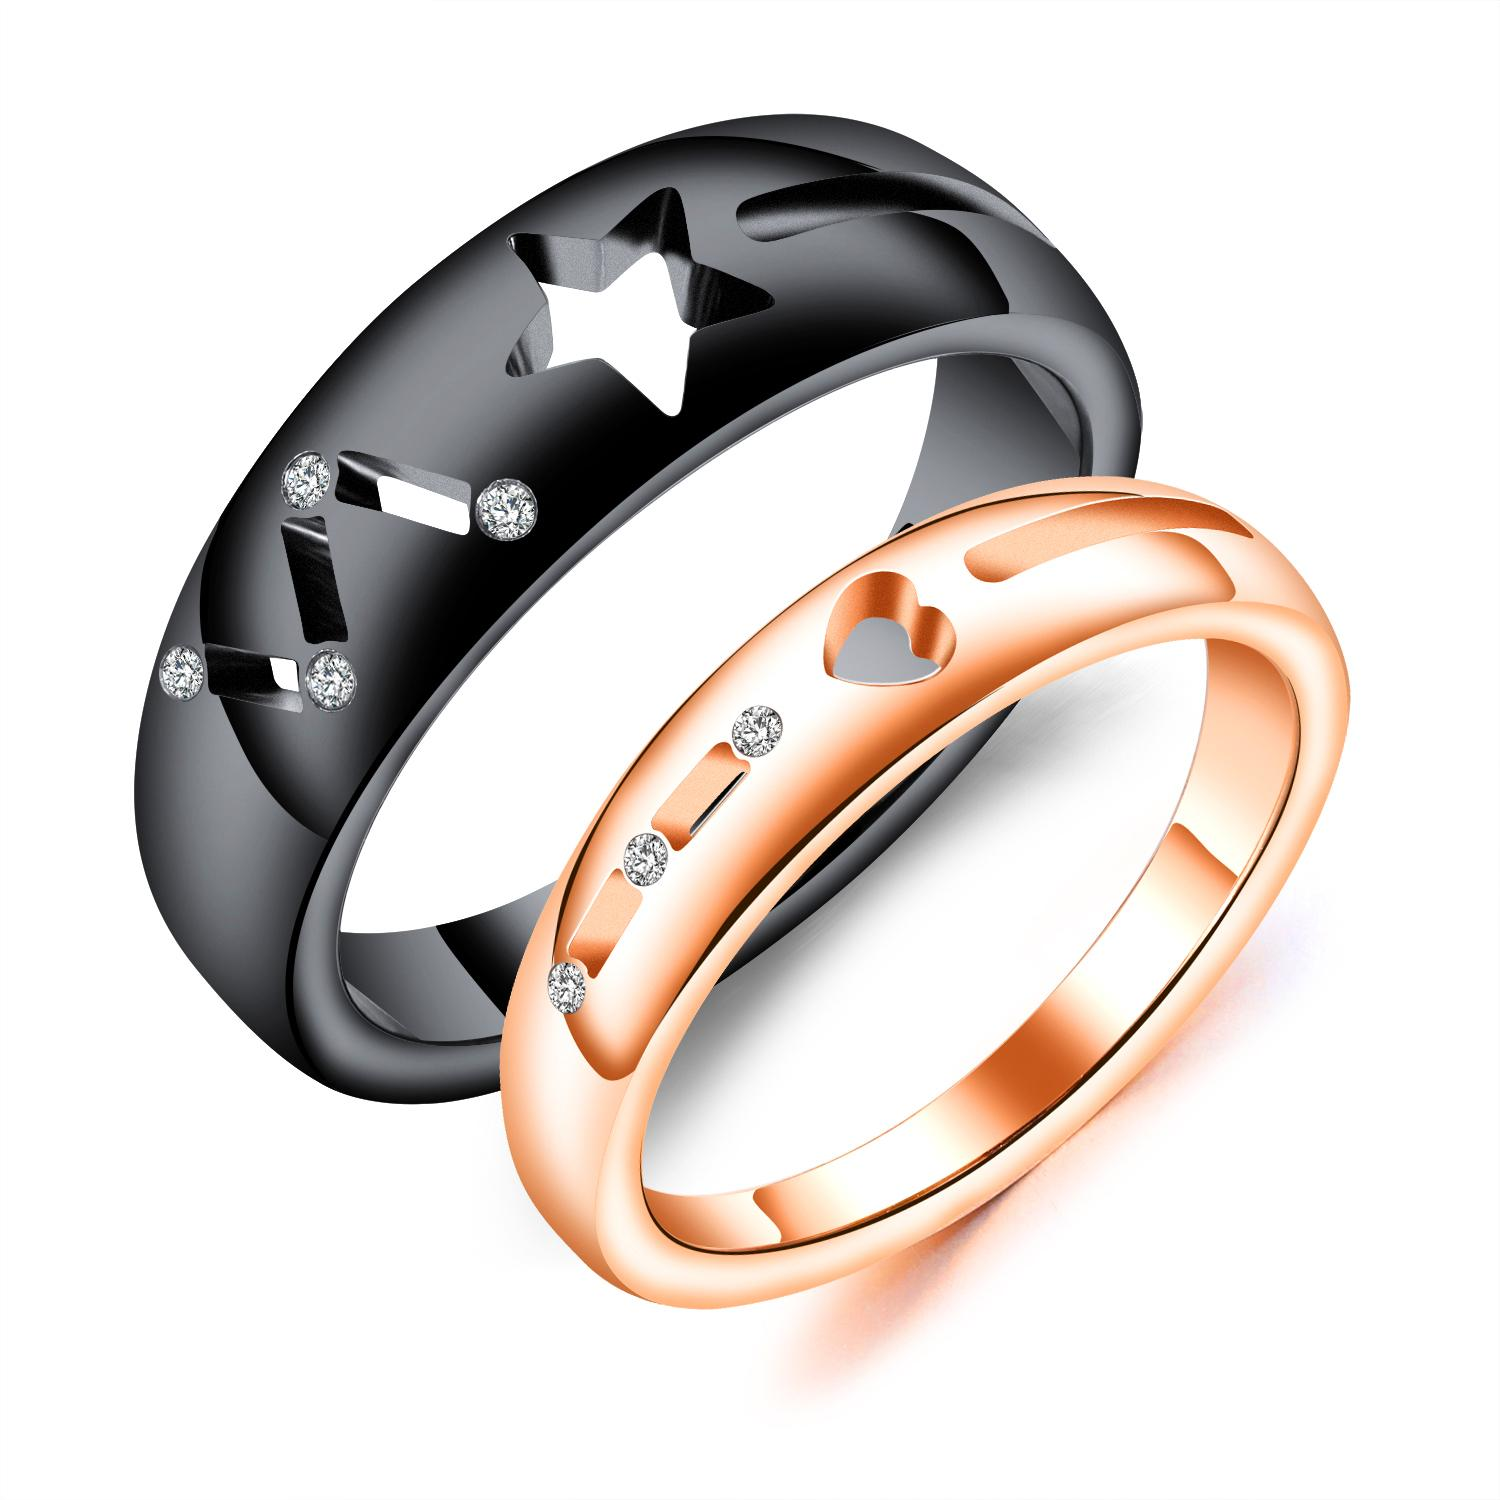 steel for amazon com moon couple vintage ring rings evbea dp set jewelry engagement stainless and sun